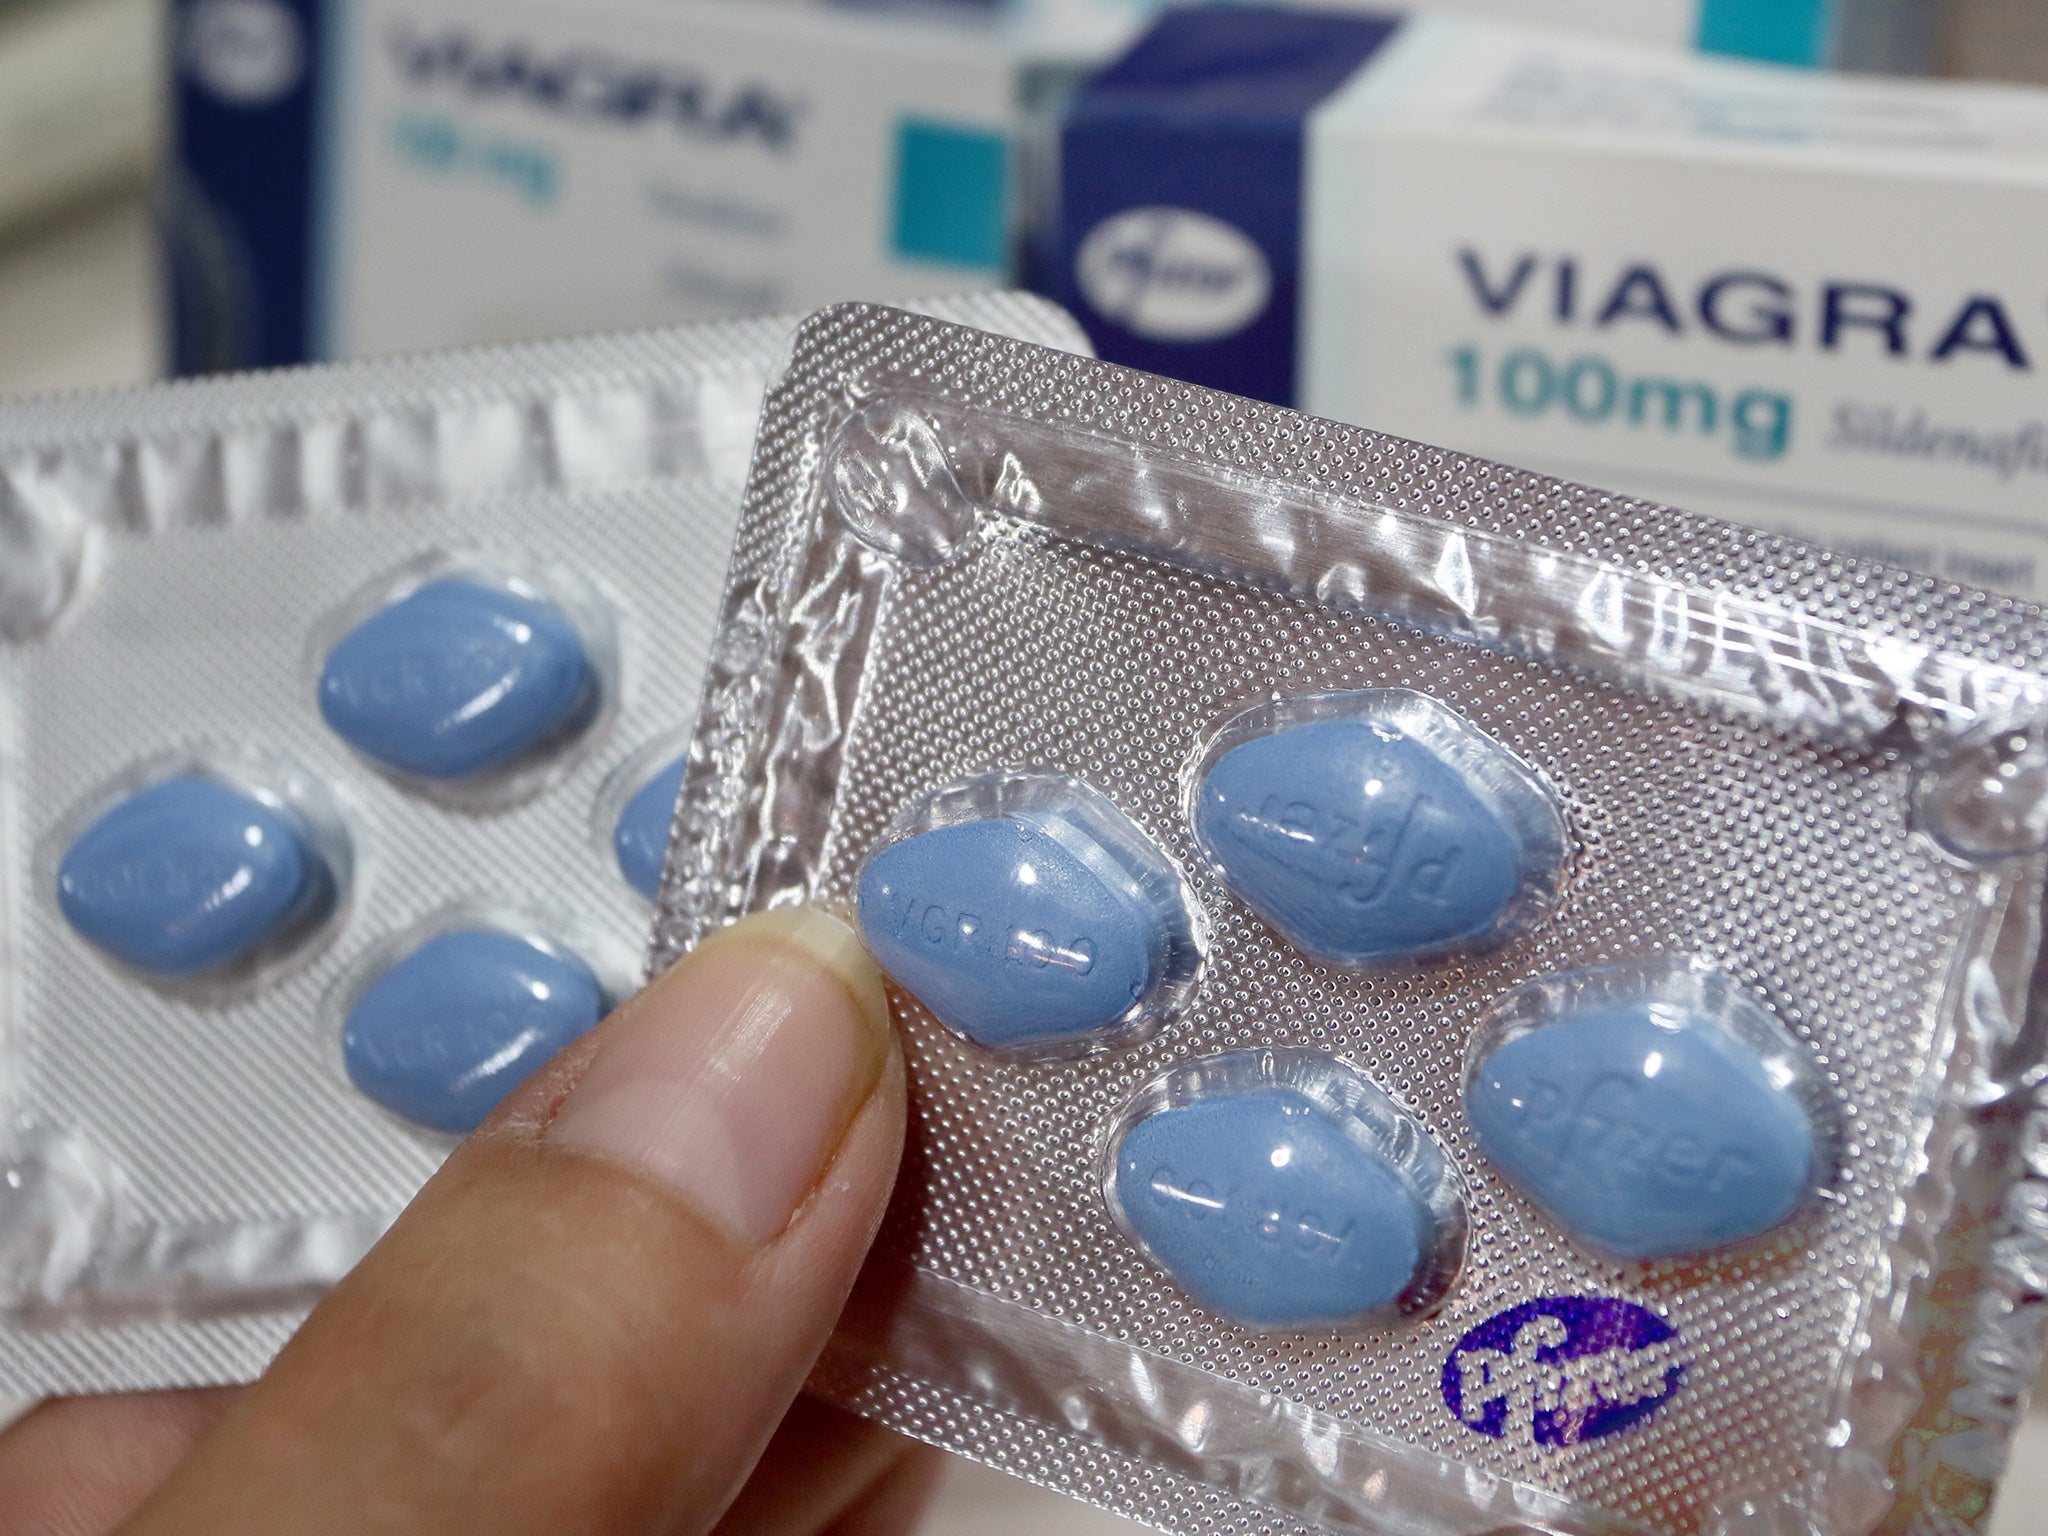 Is viagra expensive without insurance